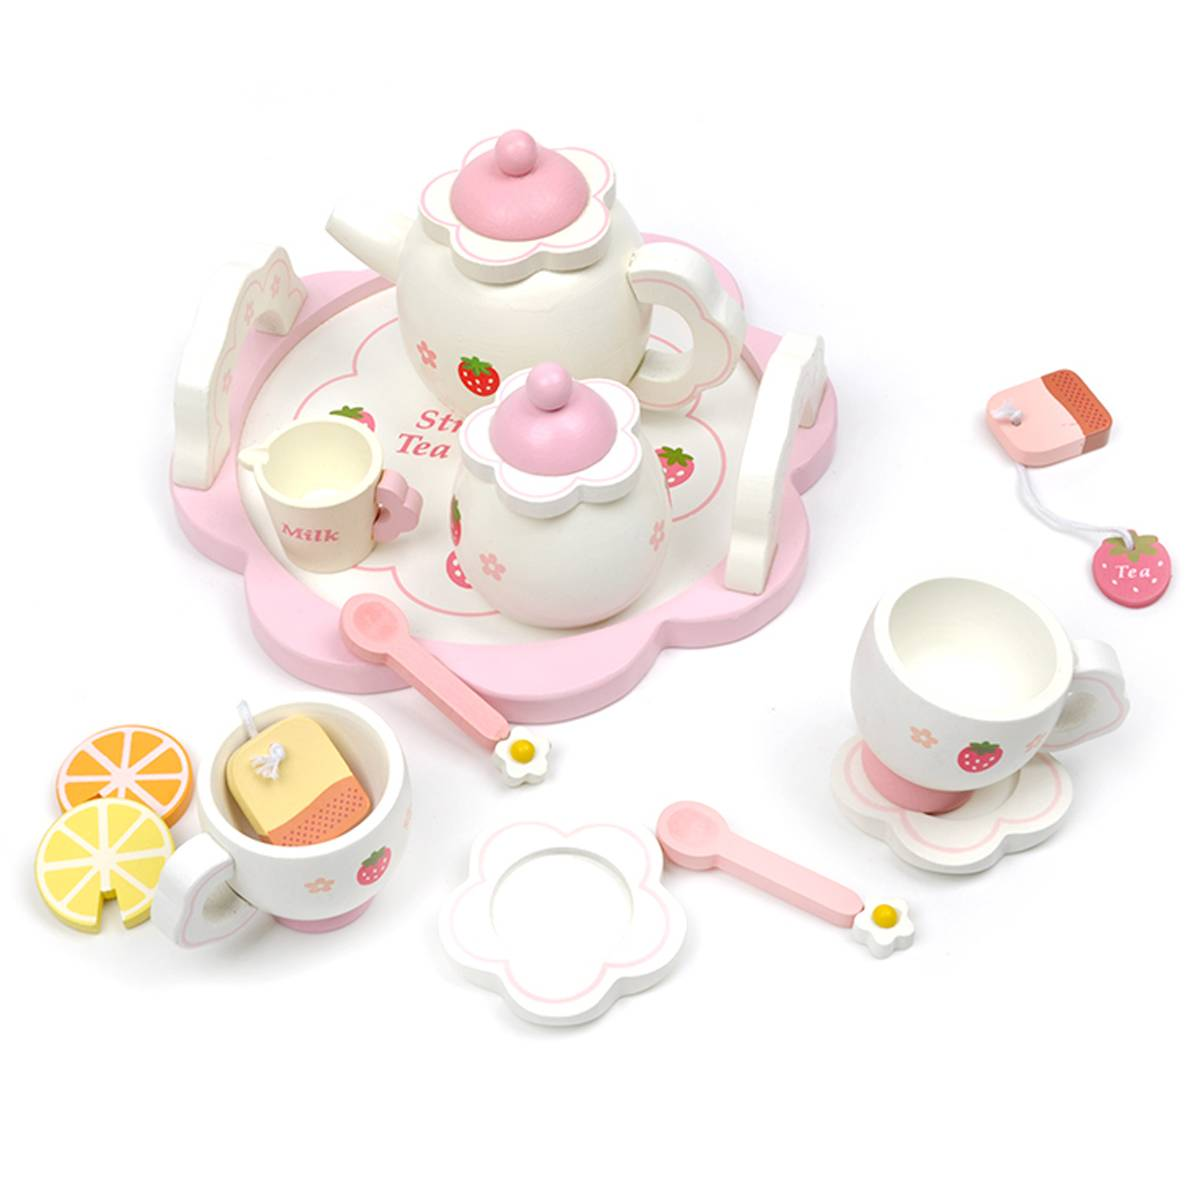 Tea Set Toy Us 20 98 50 Off Children S Tea Party Plates Mugs Cup Kids Play Toy Birthday Gift Learning Education Wooden Cooking Set Toy For Christmas Gift In